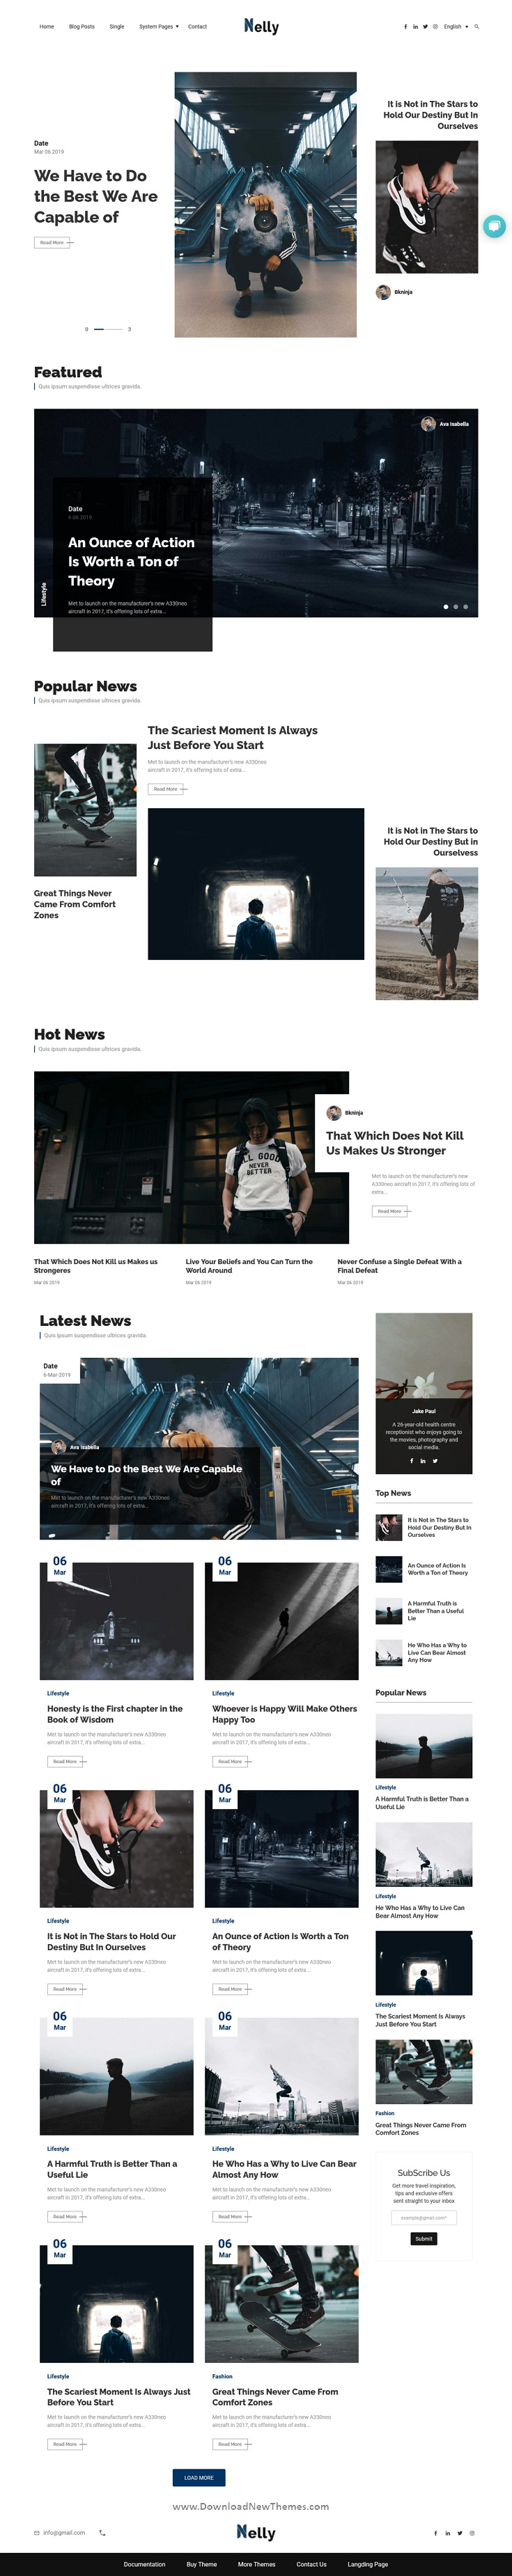 Nelly - Blog and Magazine HubSpot Theme